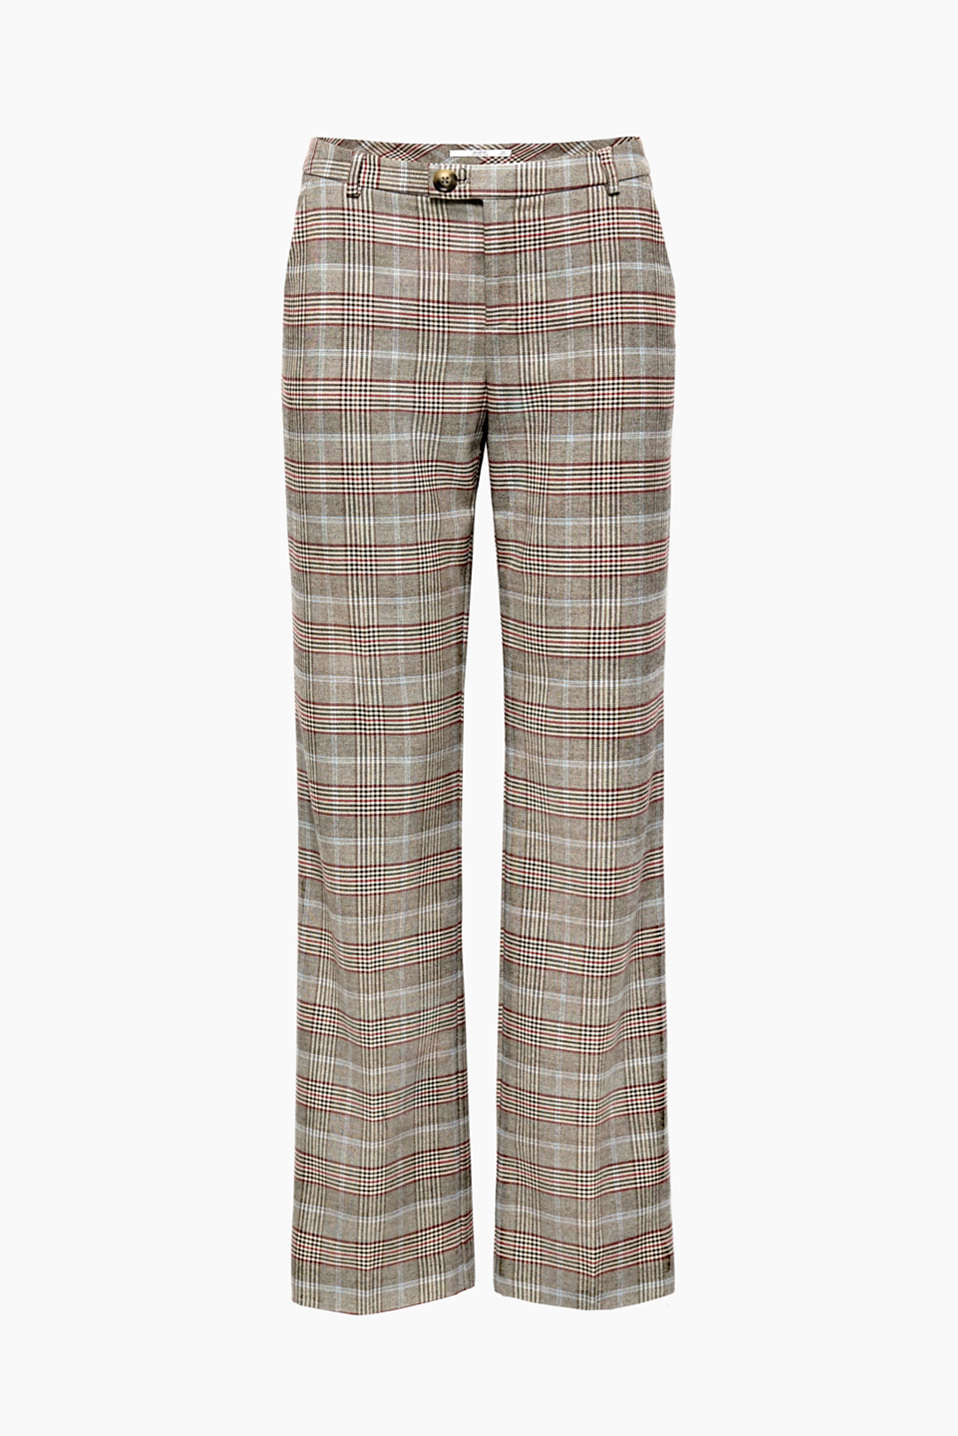 These checked, waist-pleat trousers with soft woolly touch are the ideal companion for smart day looks.